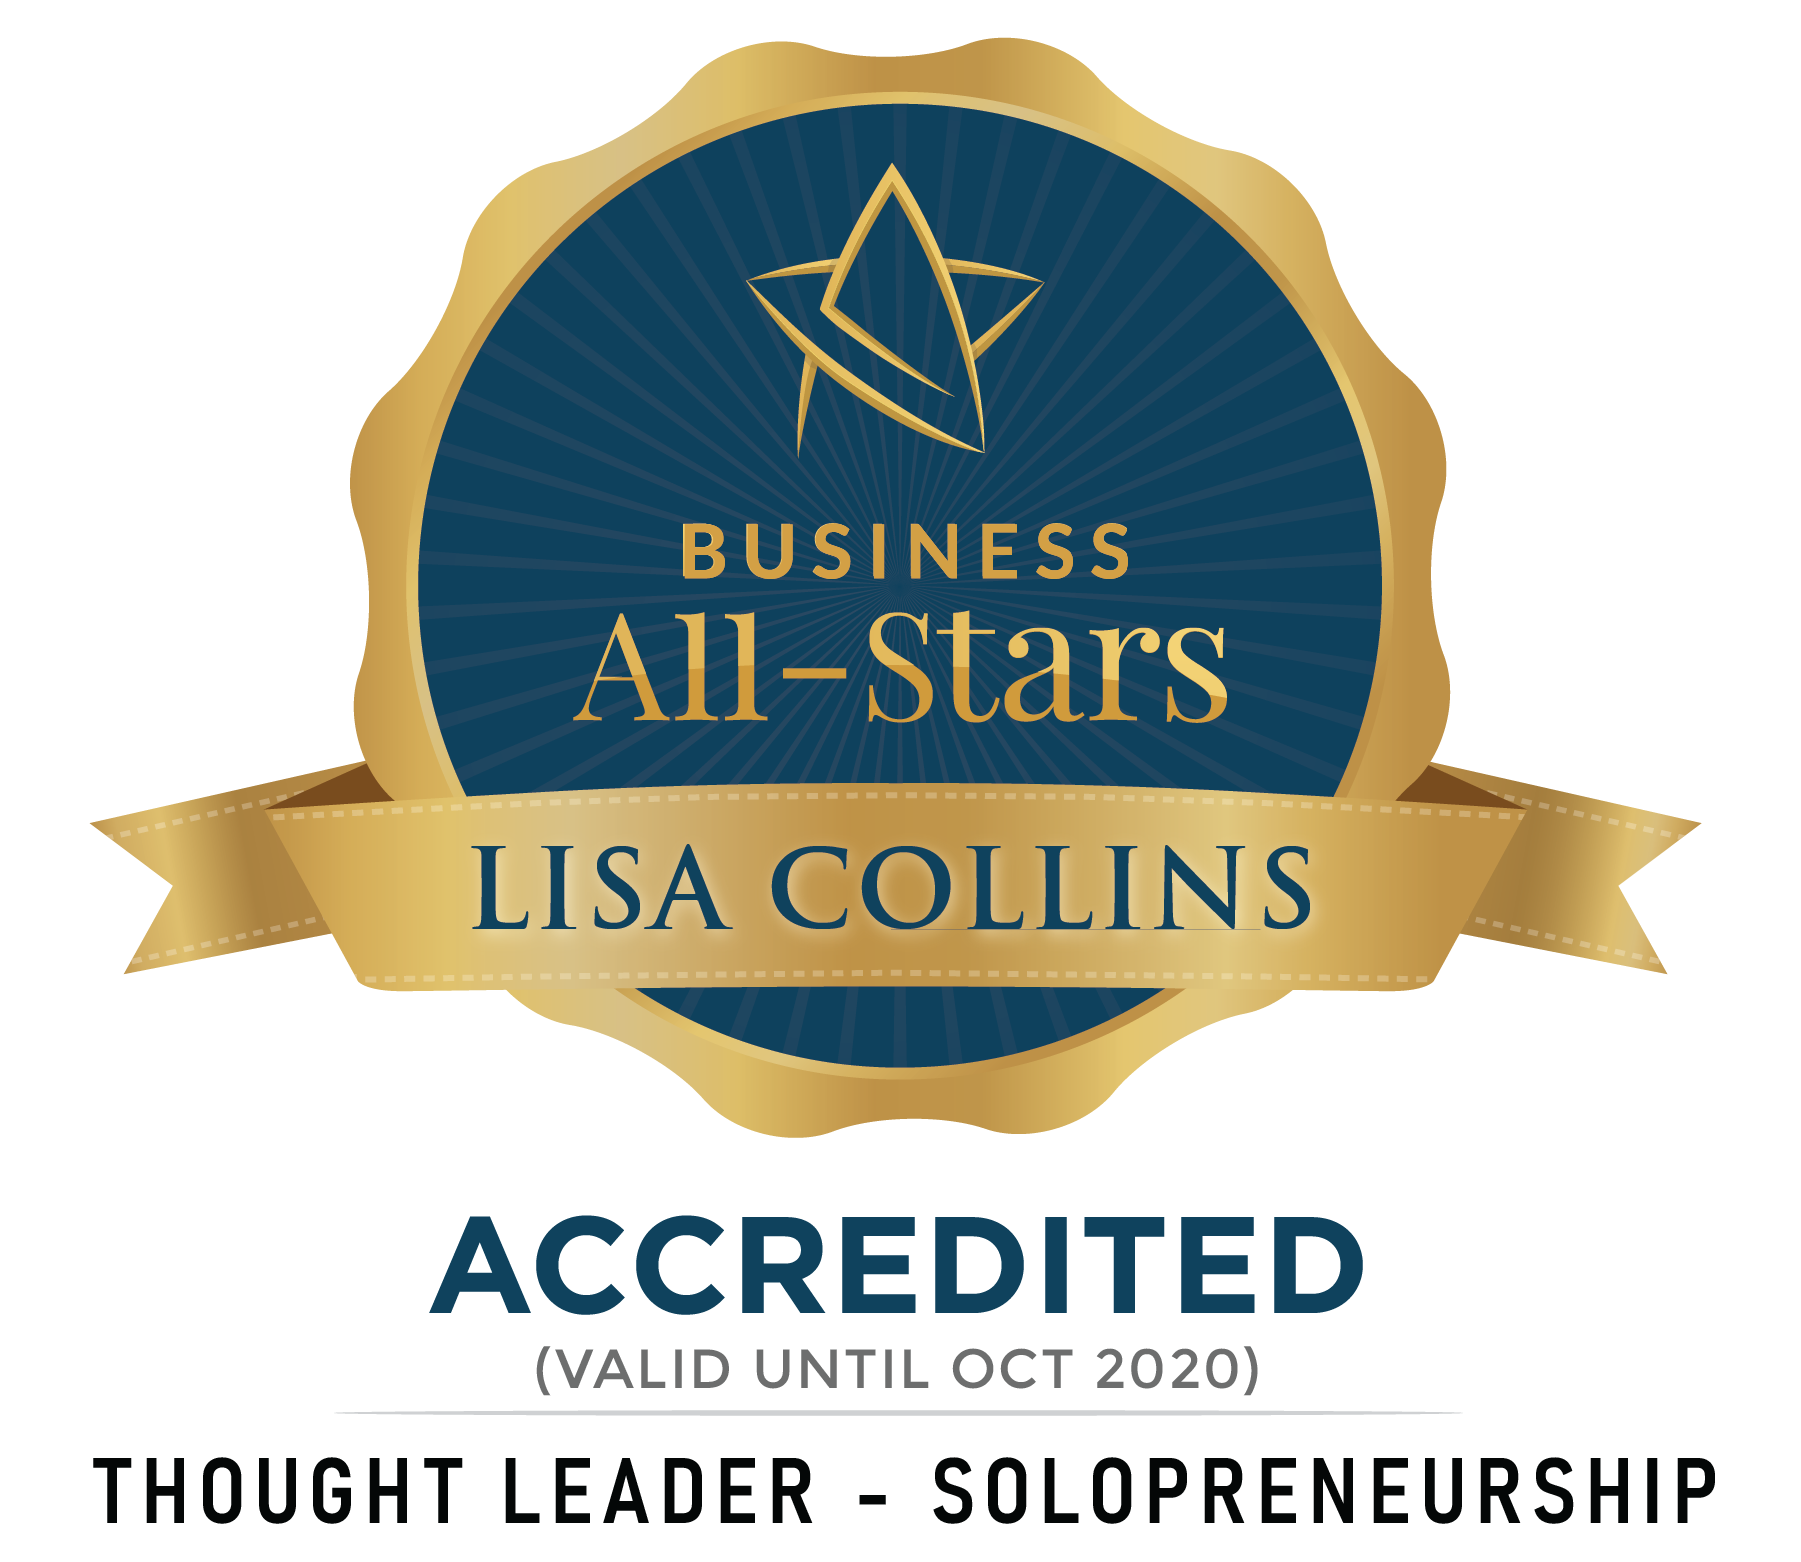 Lisa Collins - Wax It Lounge - Business All-Stars Accreditation